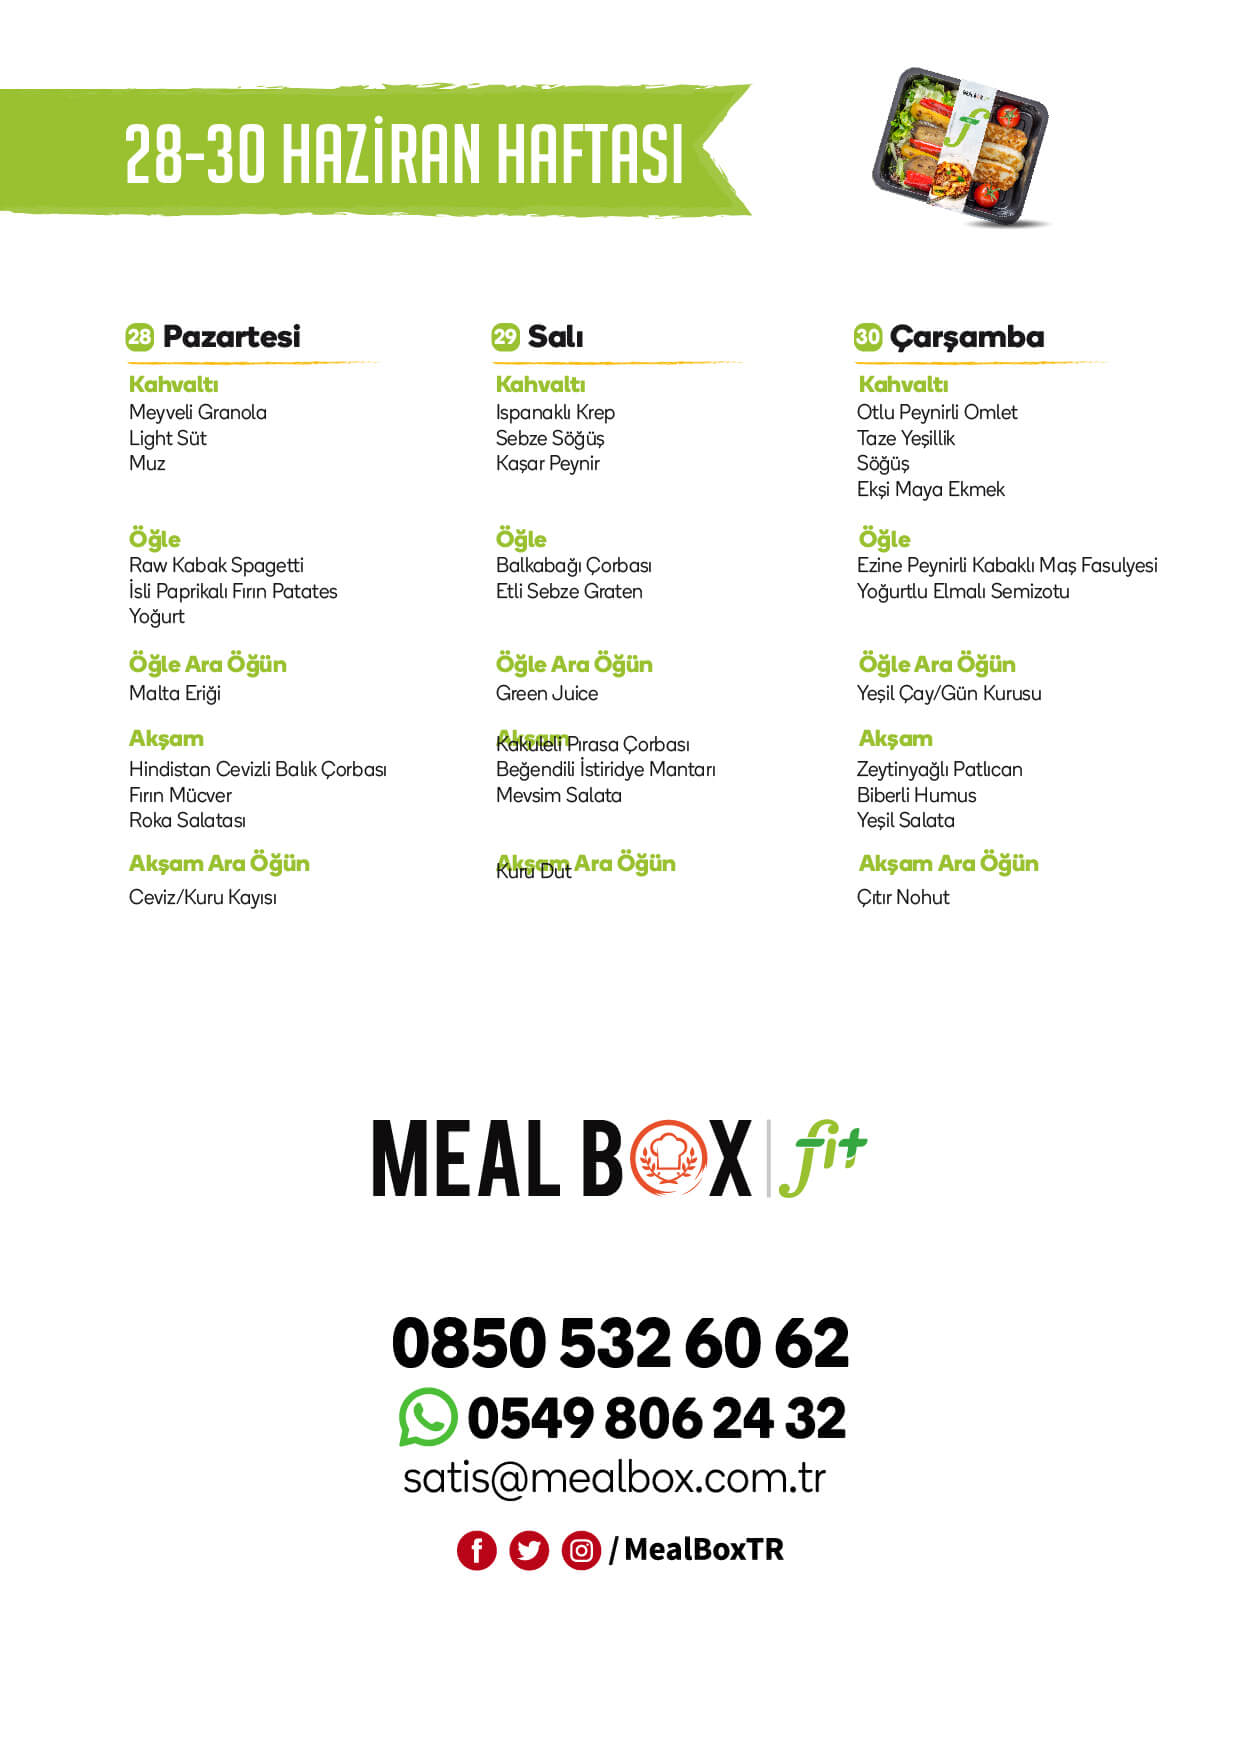 Meal Box Fit Menüsü